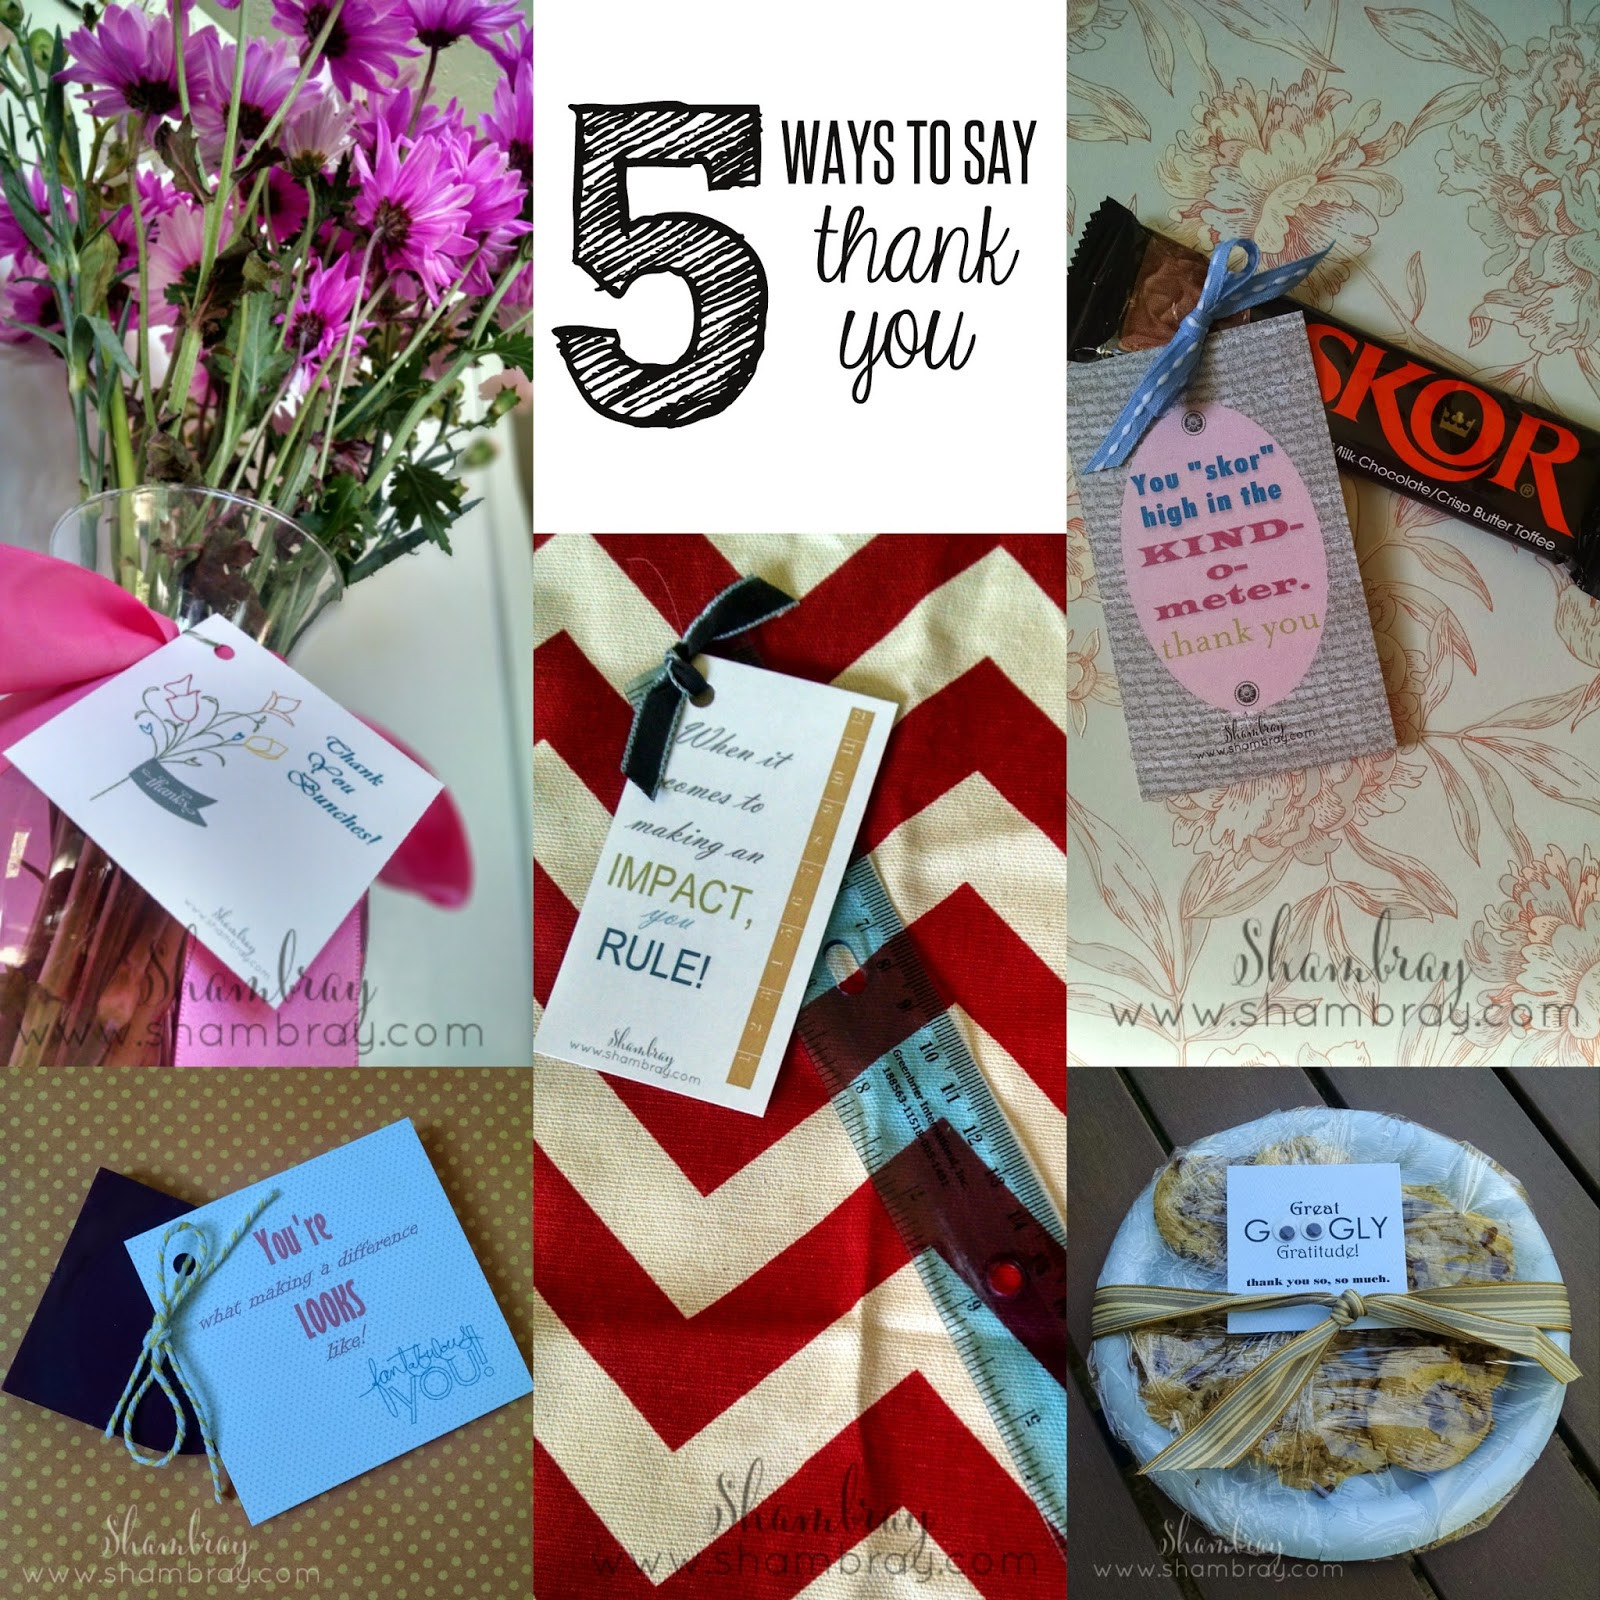 Thank Gift Ideas  Shambray Creative ways to say thank you and t ideas